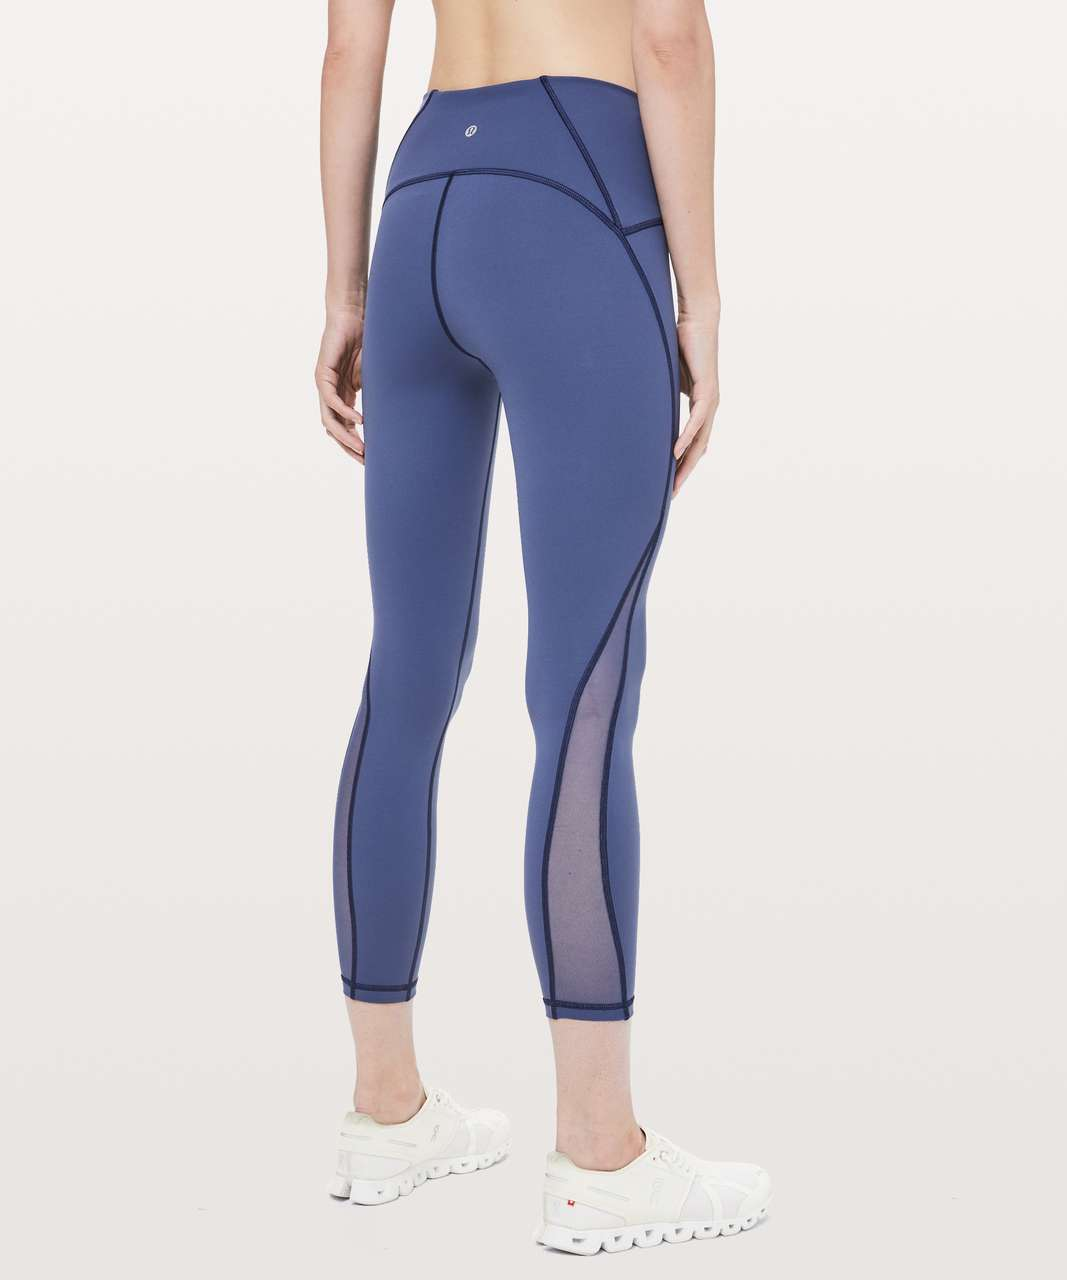 "Lululemon Train Times 7/8 Pant *25"" - Gatsby Blue"